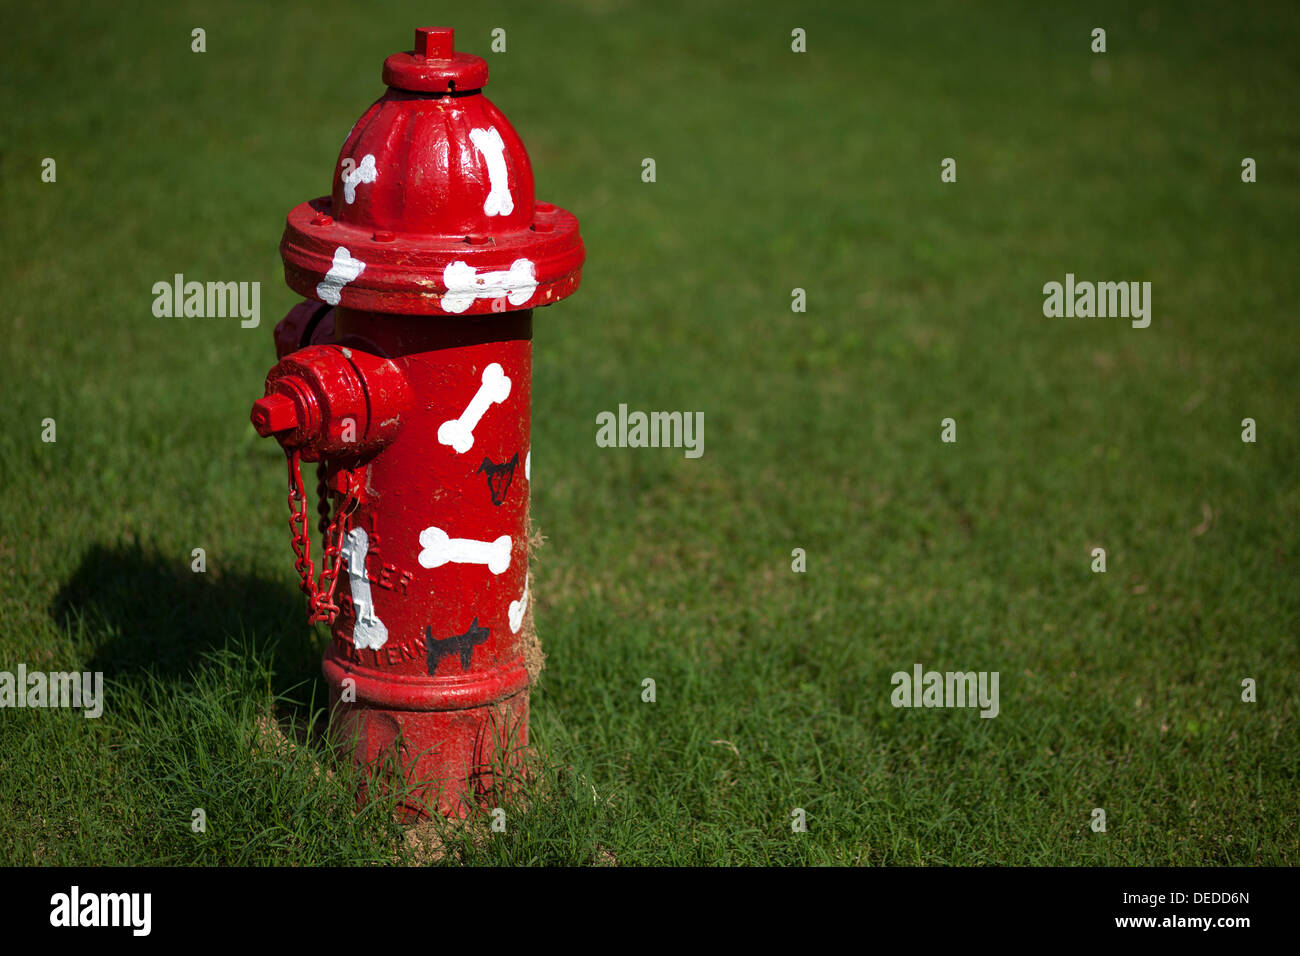 A dog themed fire hydrant. - Stock Image